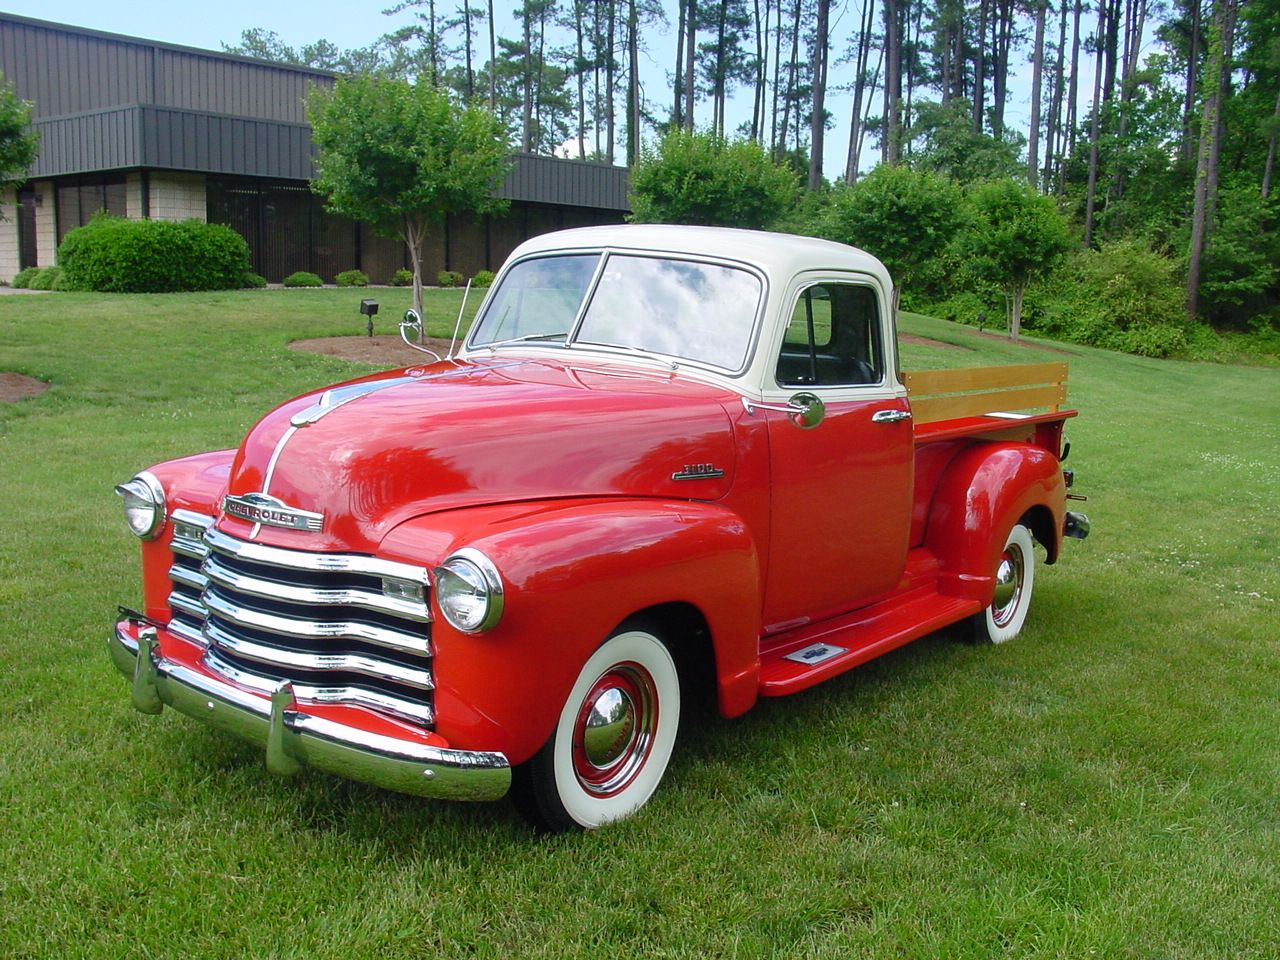 1953 chevrolet pickup antique trucks pinterest chevrolet red color and cars. Black Bedroom Furniture Sets. Home Design Ideas